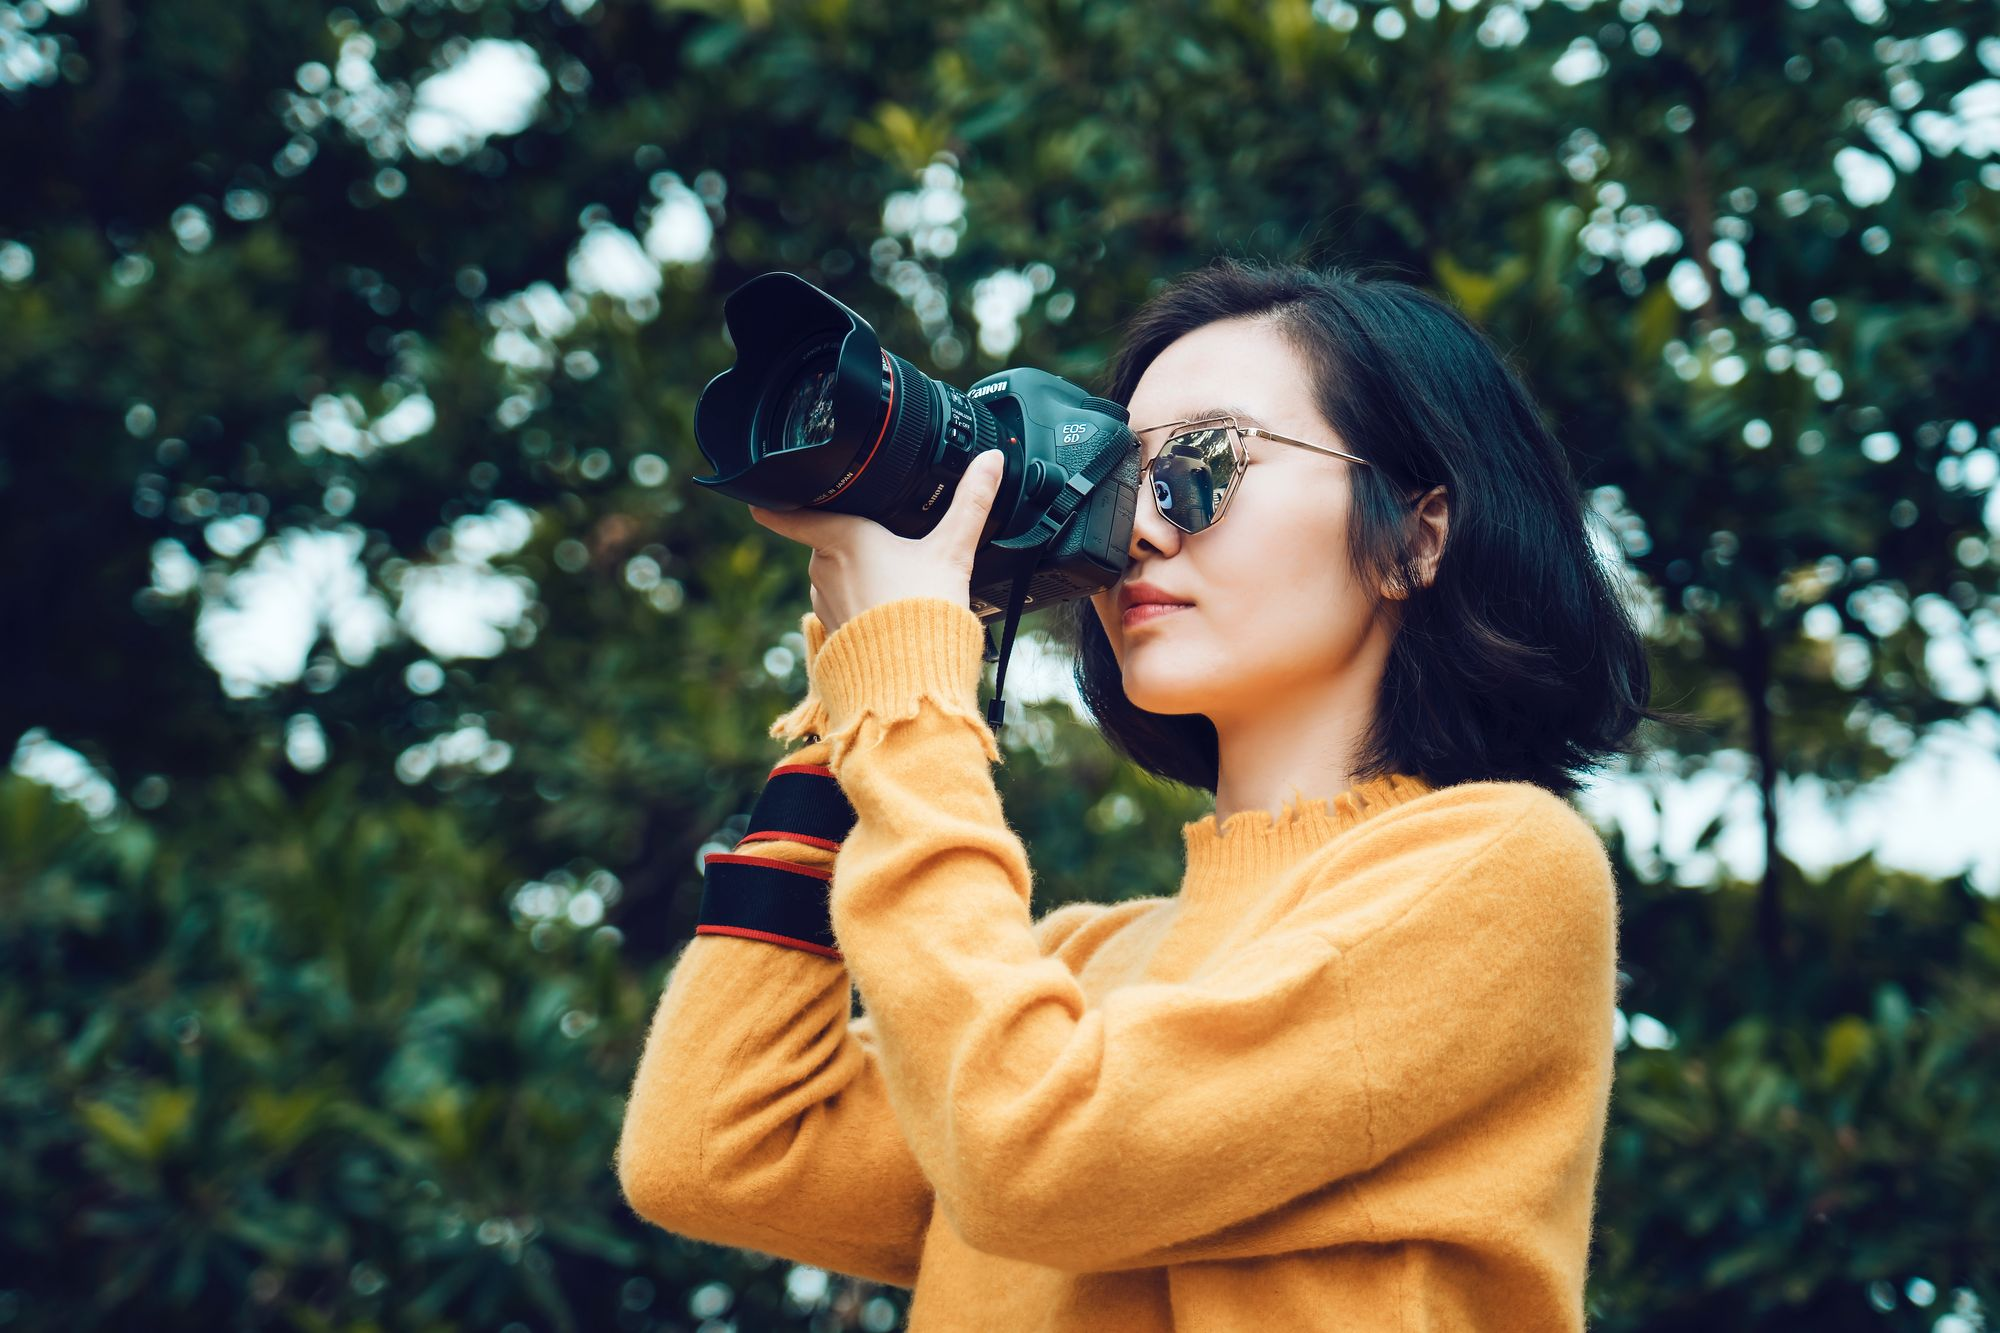 Turn your photography skills into a side hustle